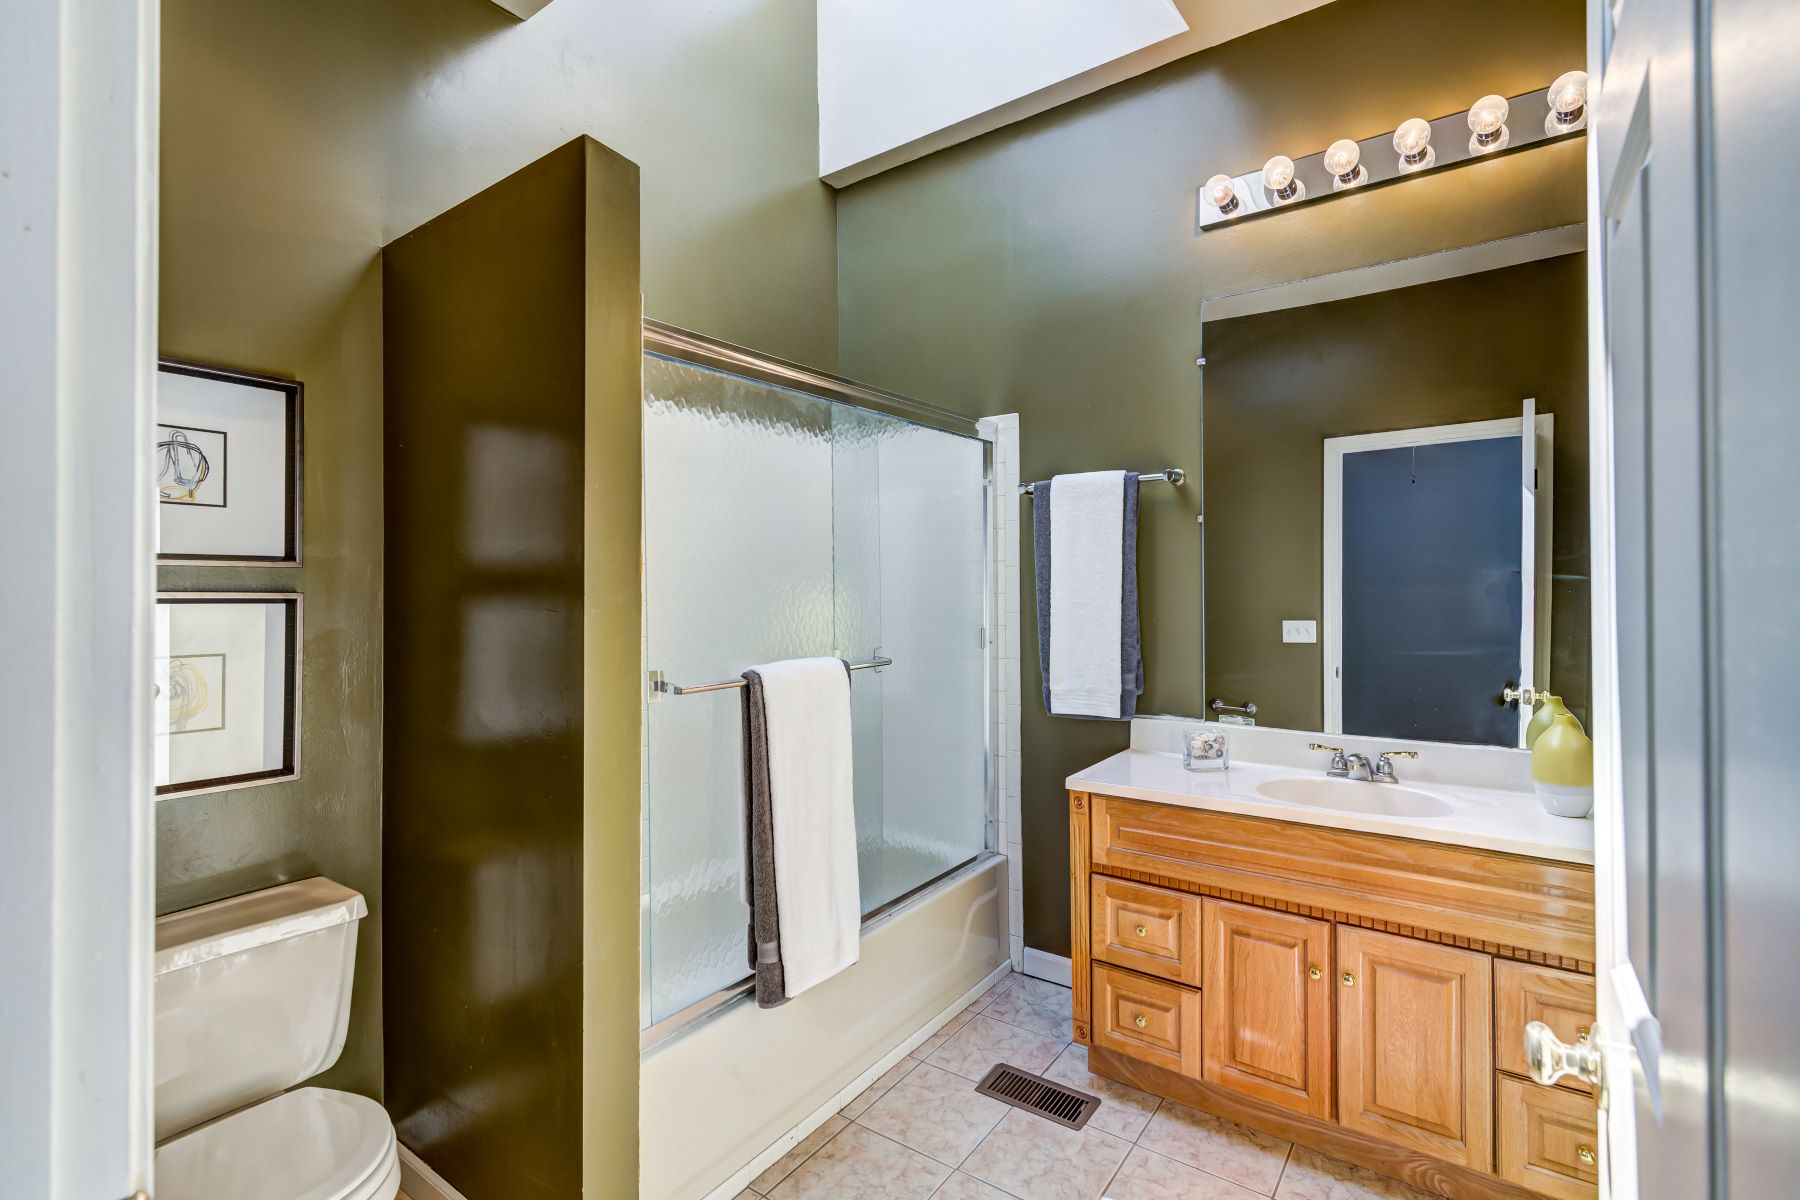 Additional photo for property listing at Updated and Walkable Central West End Condo 4364 West Pine Boulevard #A St. Louis, Missouri 63108 United States